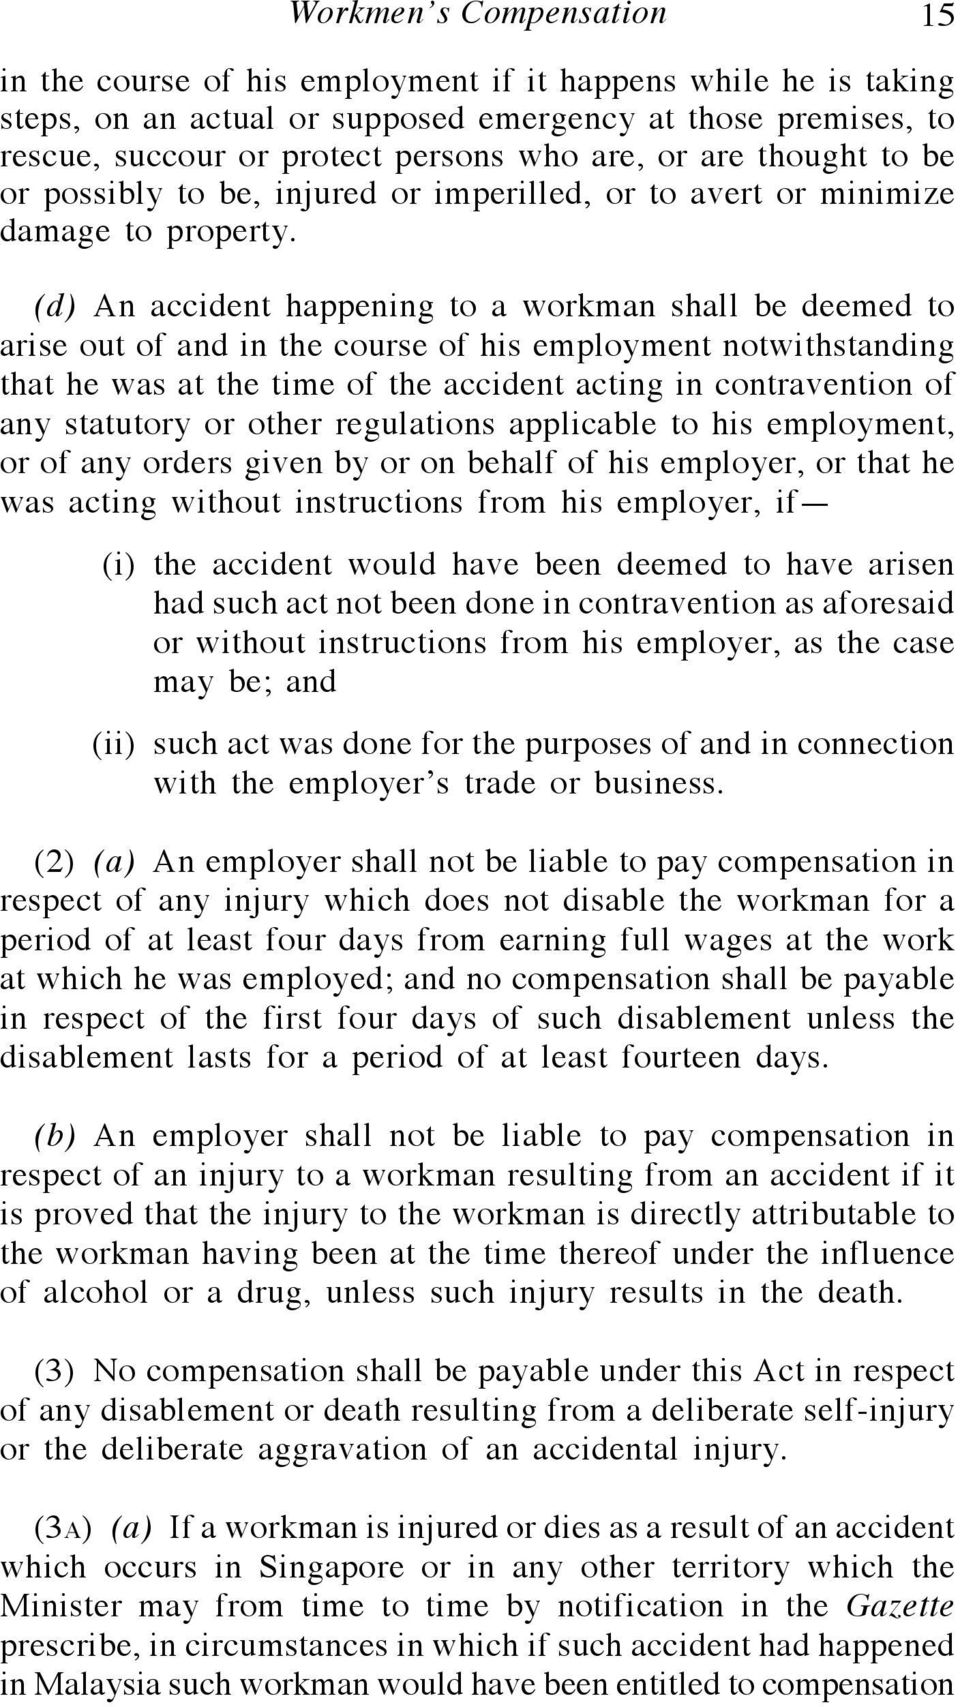 (d) An accident happening to a workman shall be deemed to arise out of and in the course of his employment notwithstanding that he was at the time of the accident acting in contravention of any